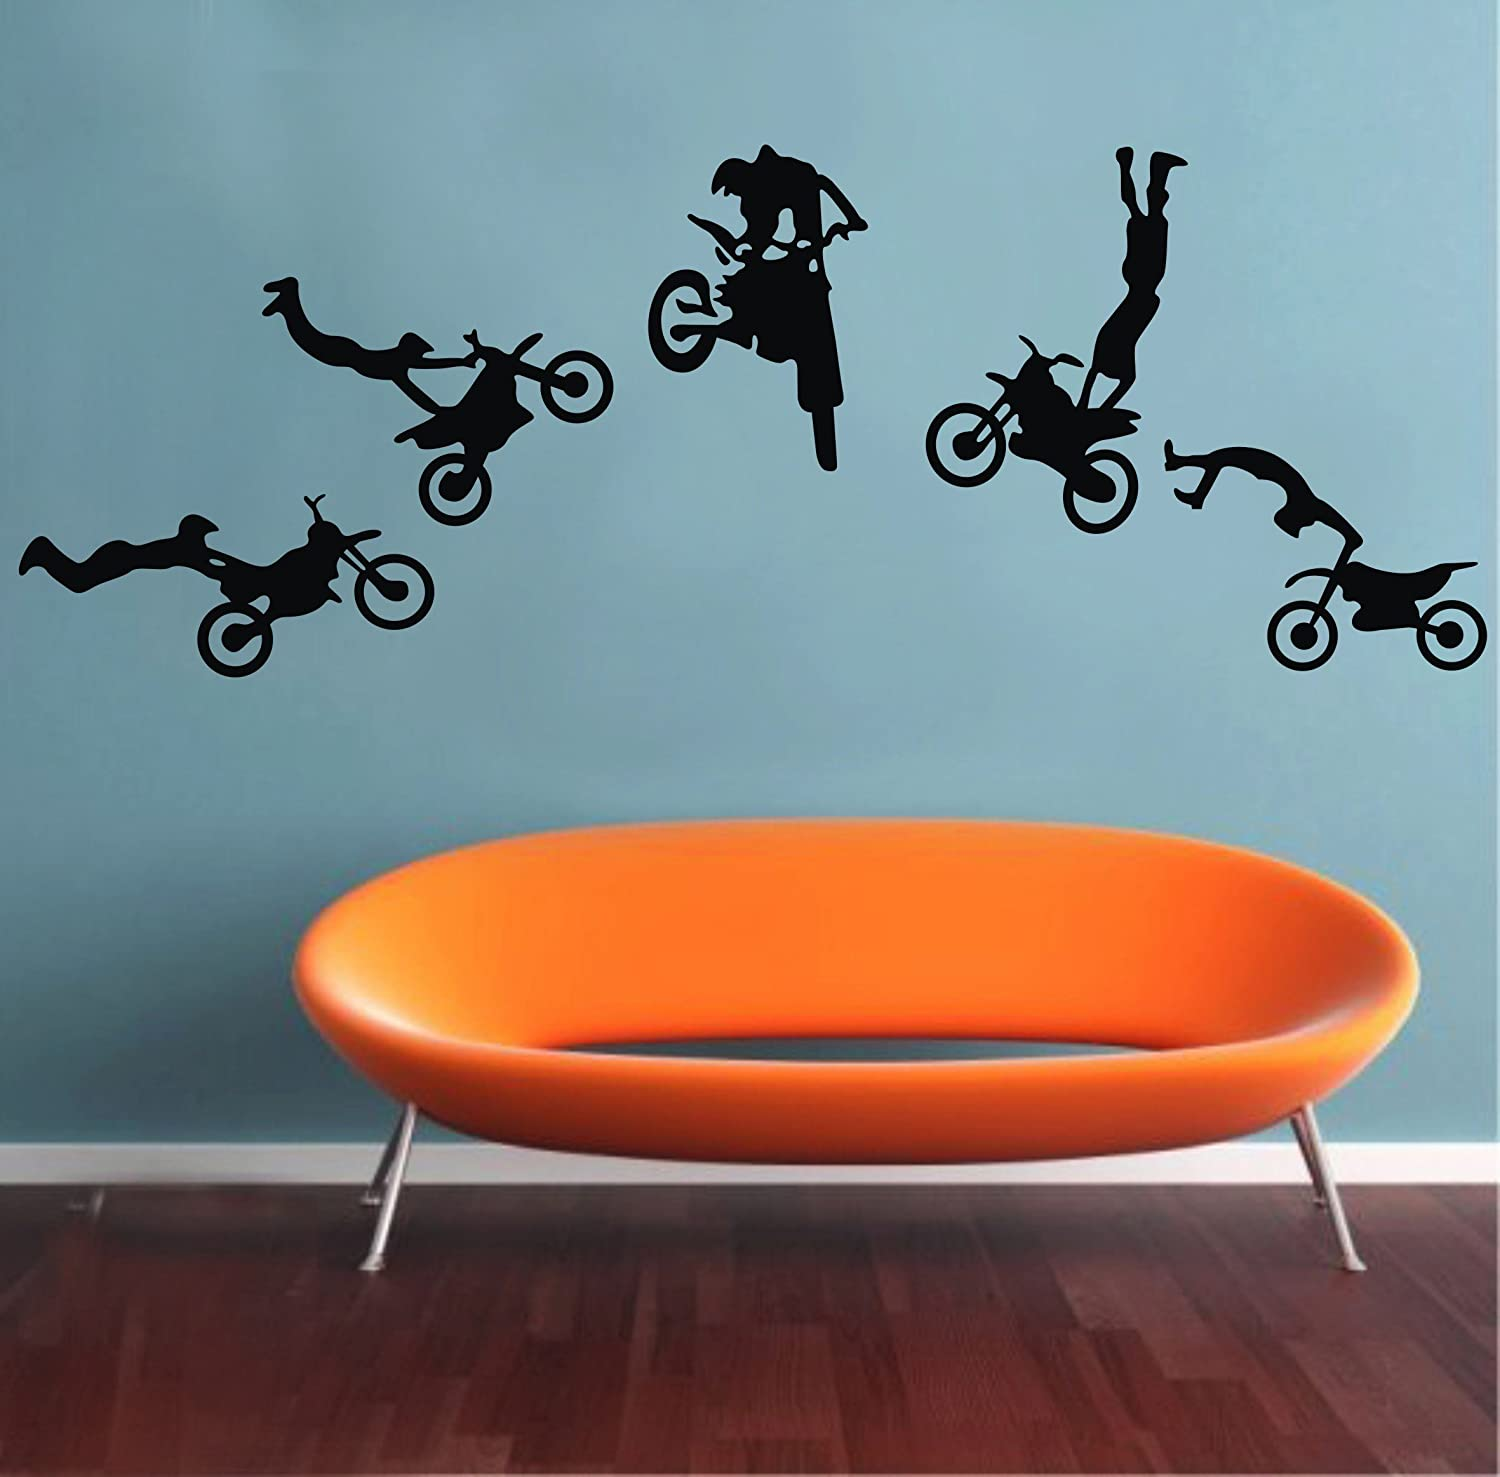 Amazon.com: Motocross Wall Decals Motocross Graphic Extreme Sport  Silhouette Removable Wall Art DIY Vinyl Wall Sticker: Baby